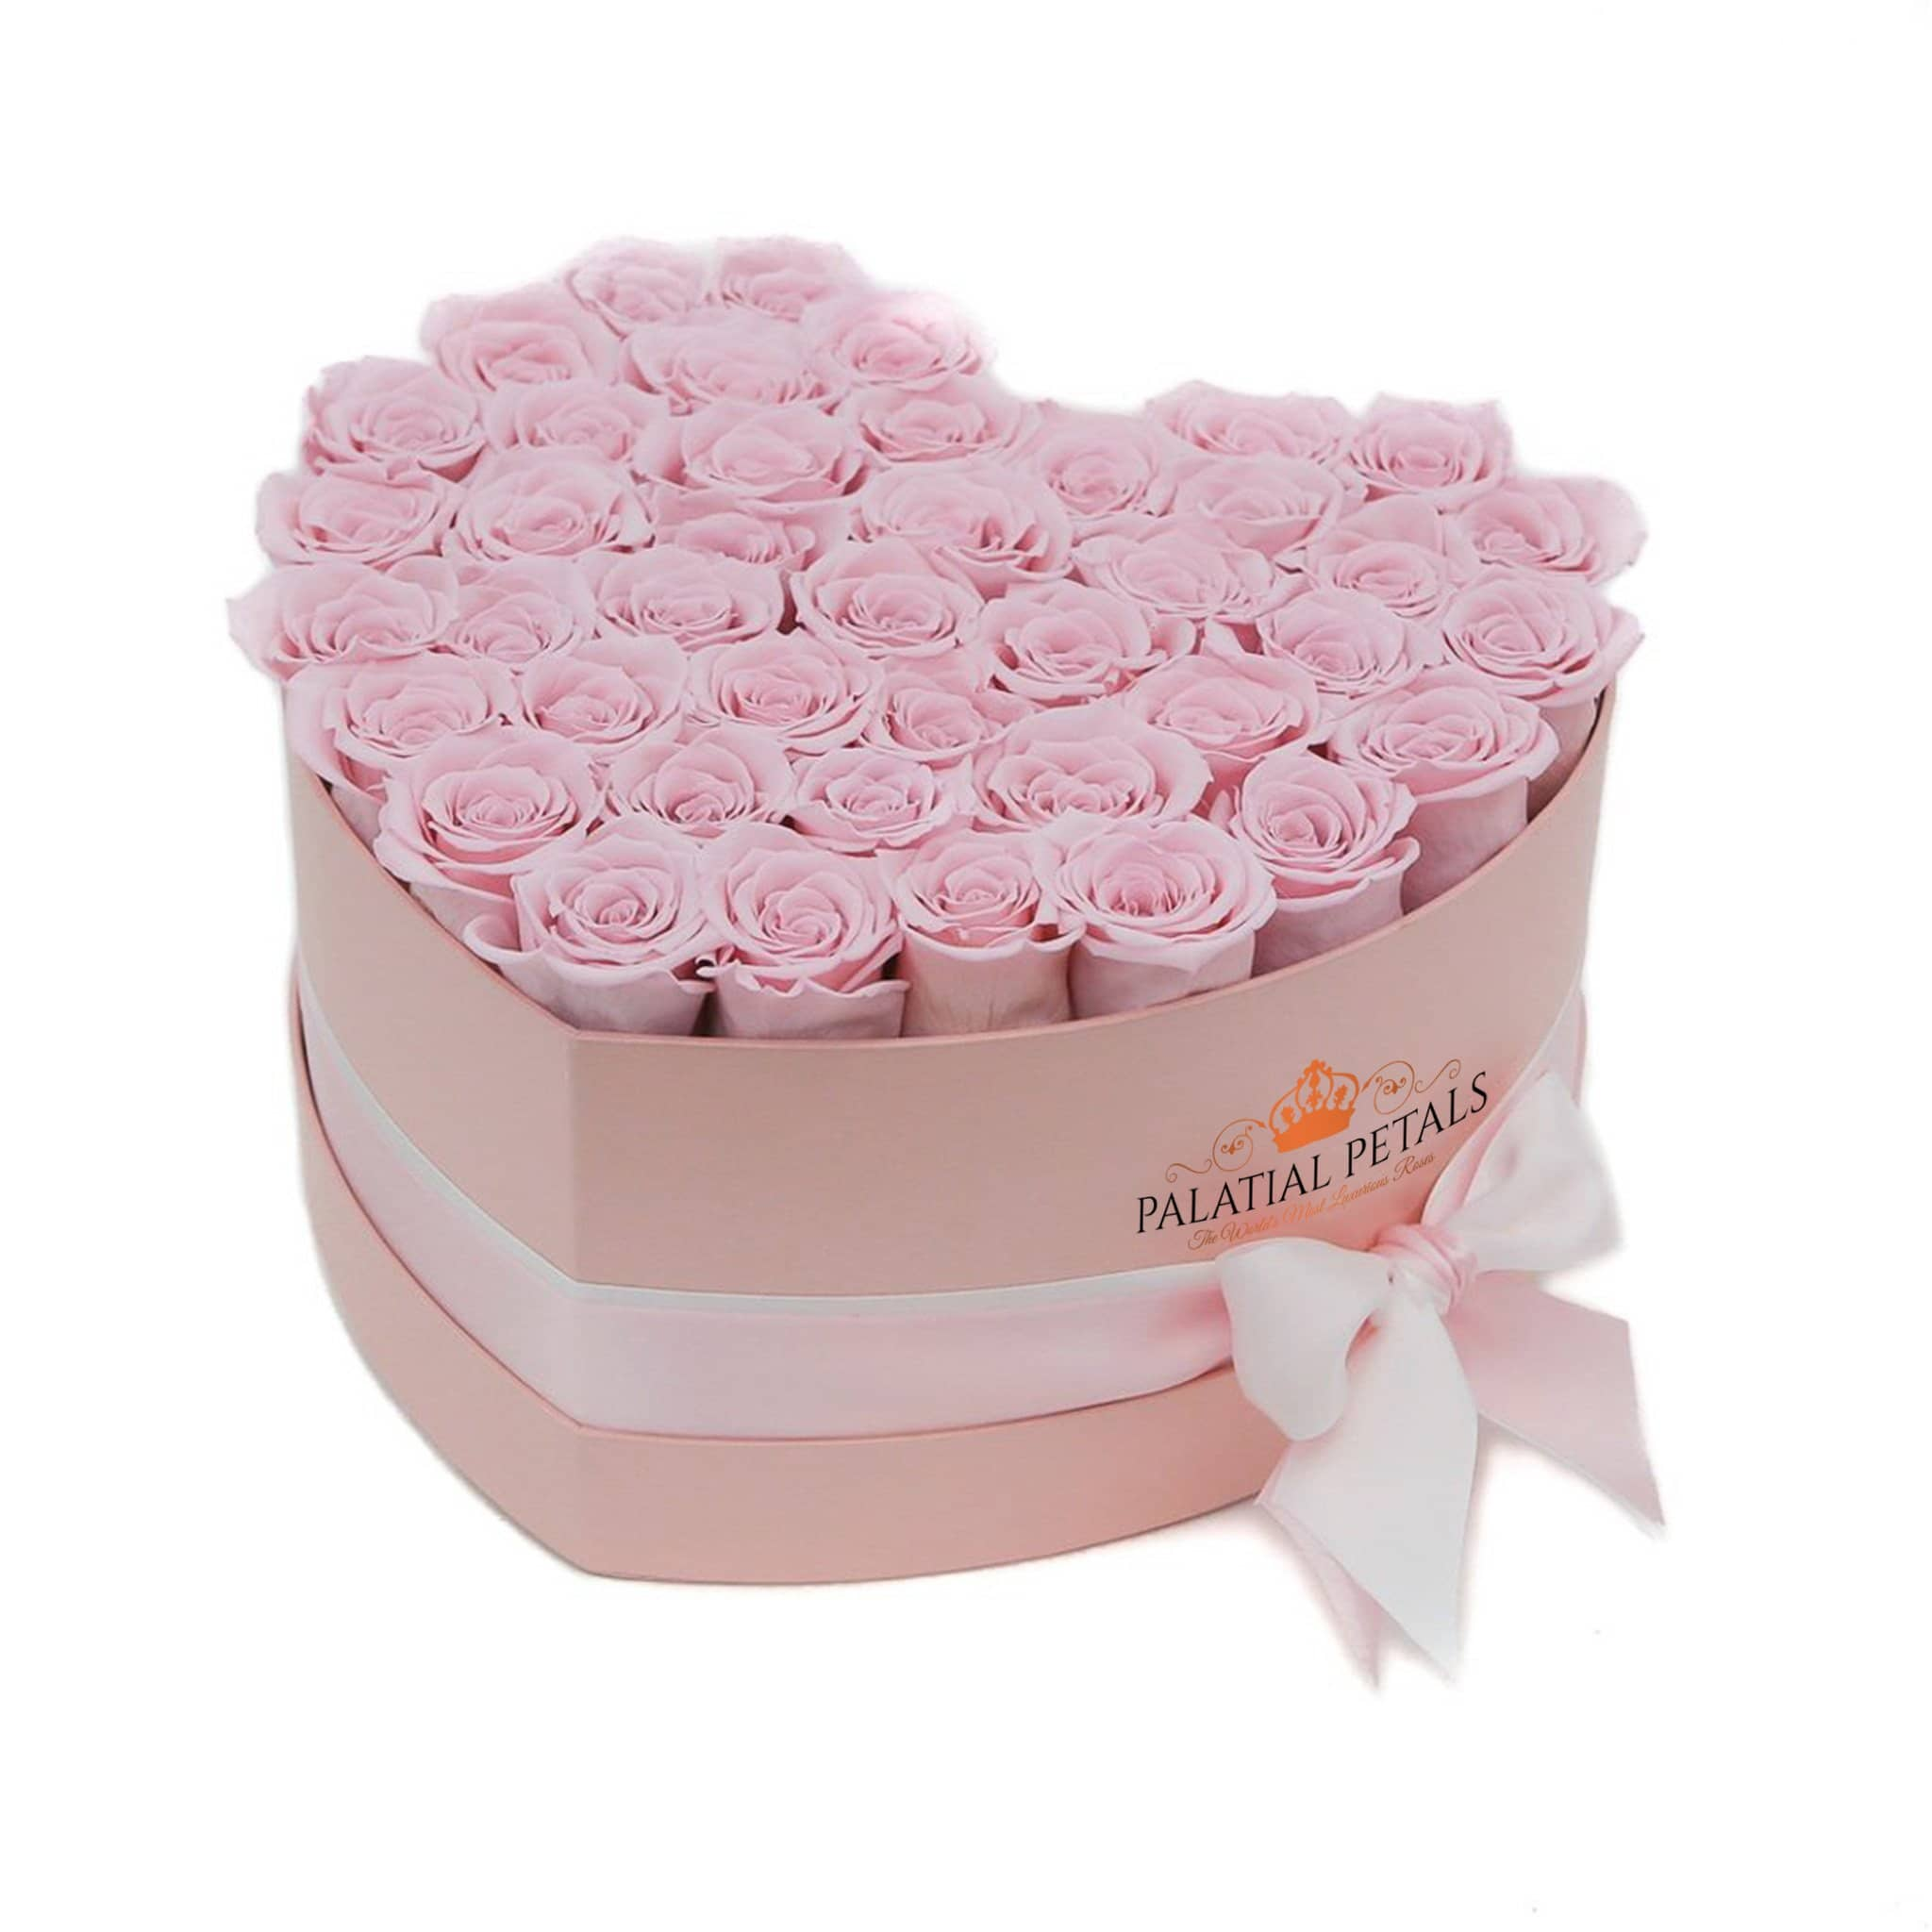 Pink Roses That Last A Year - Love Heart Rose Box